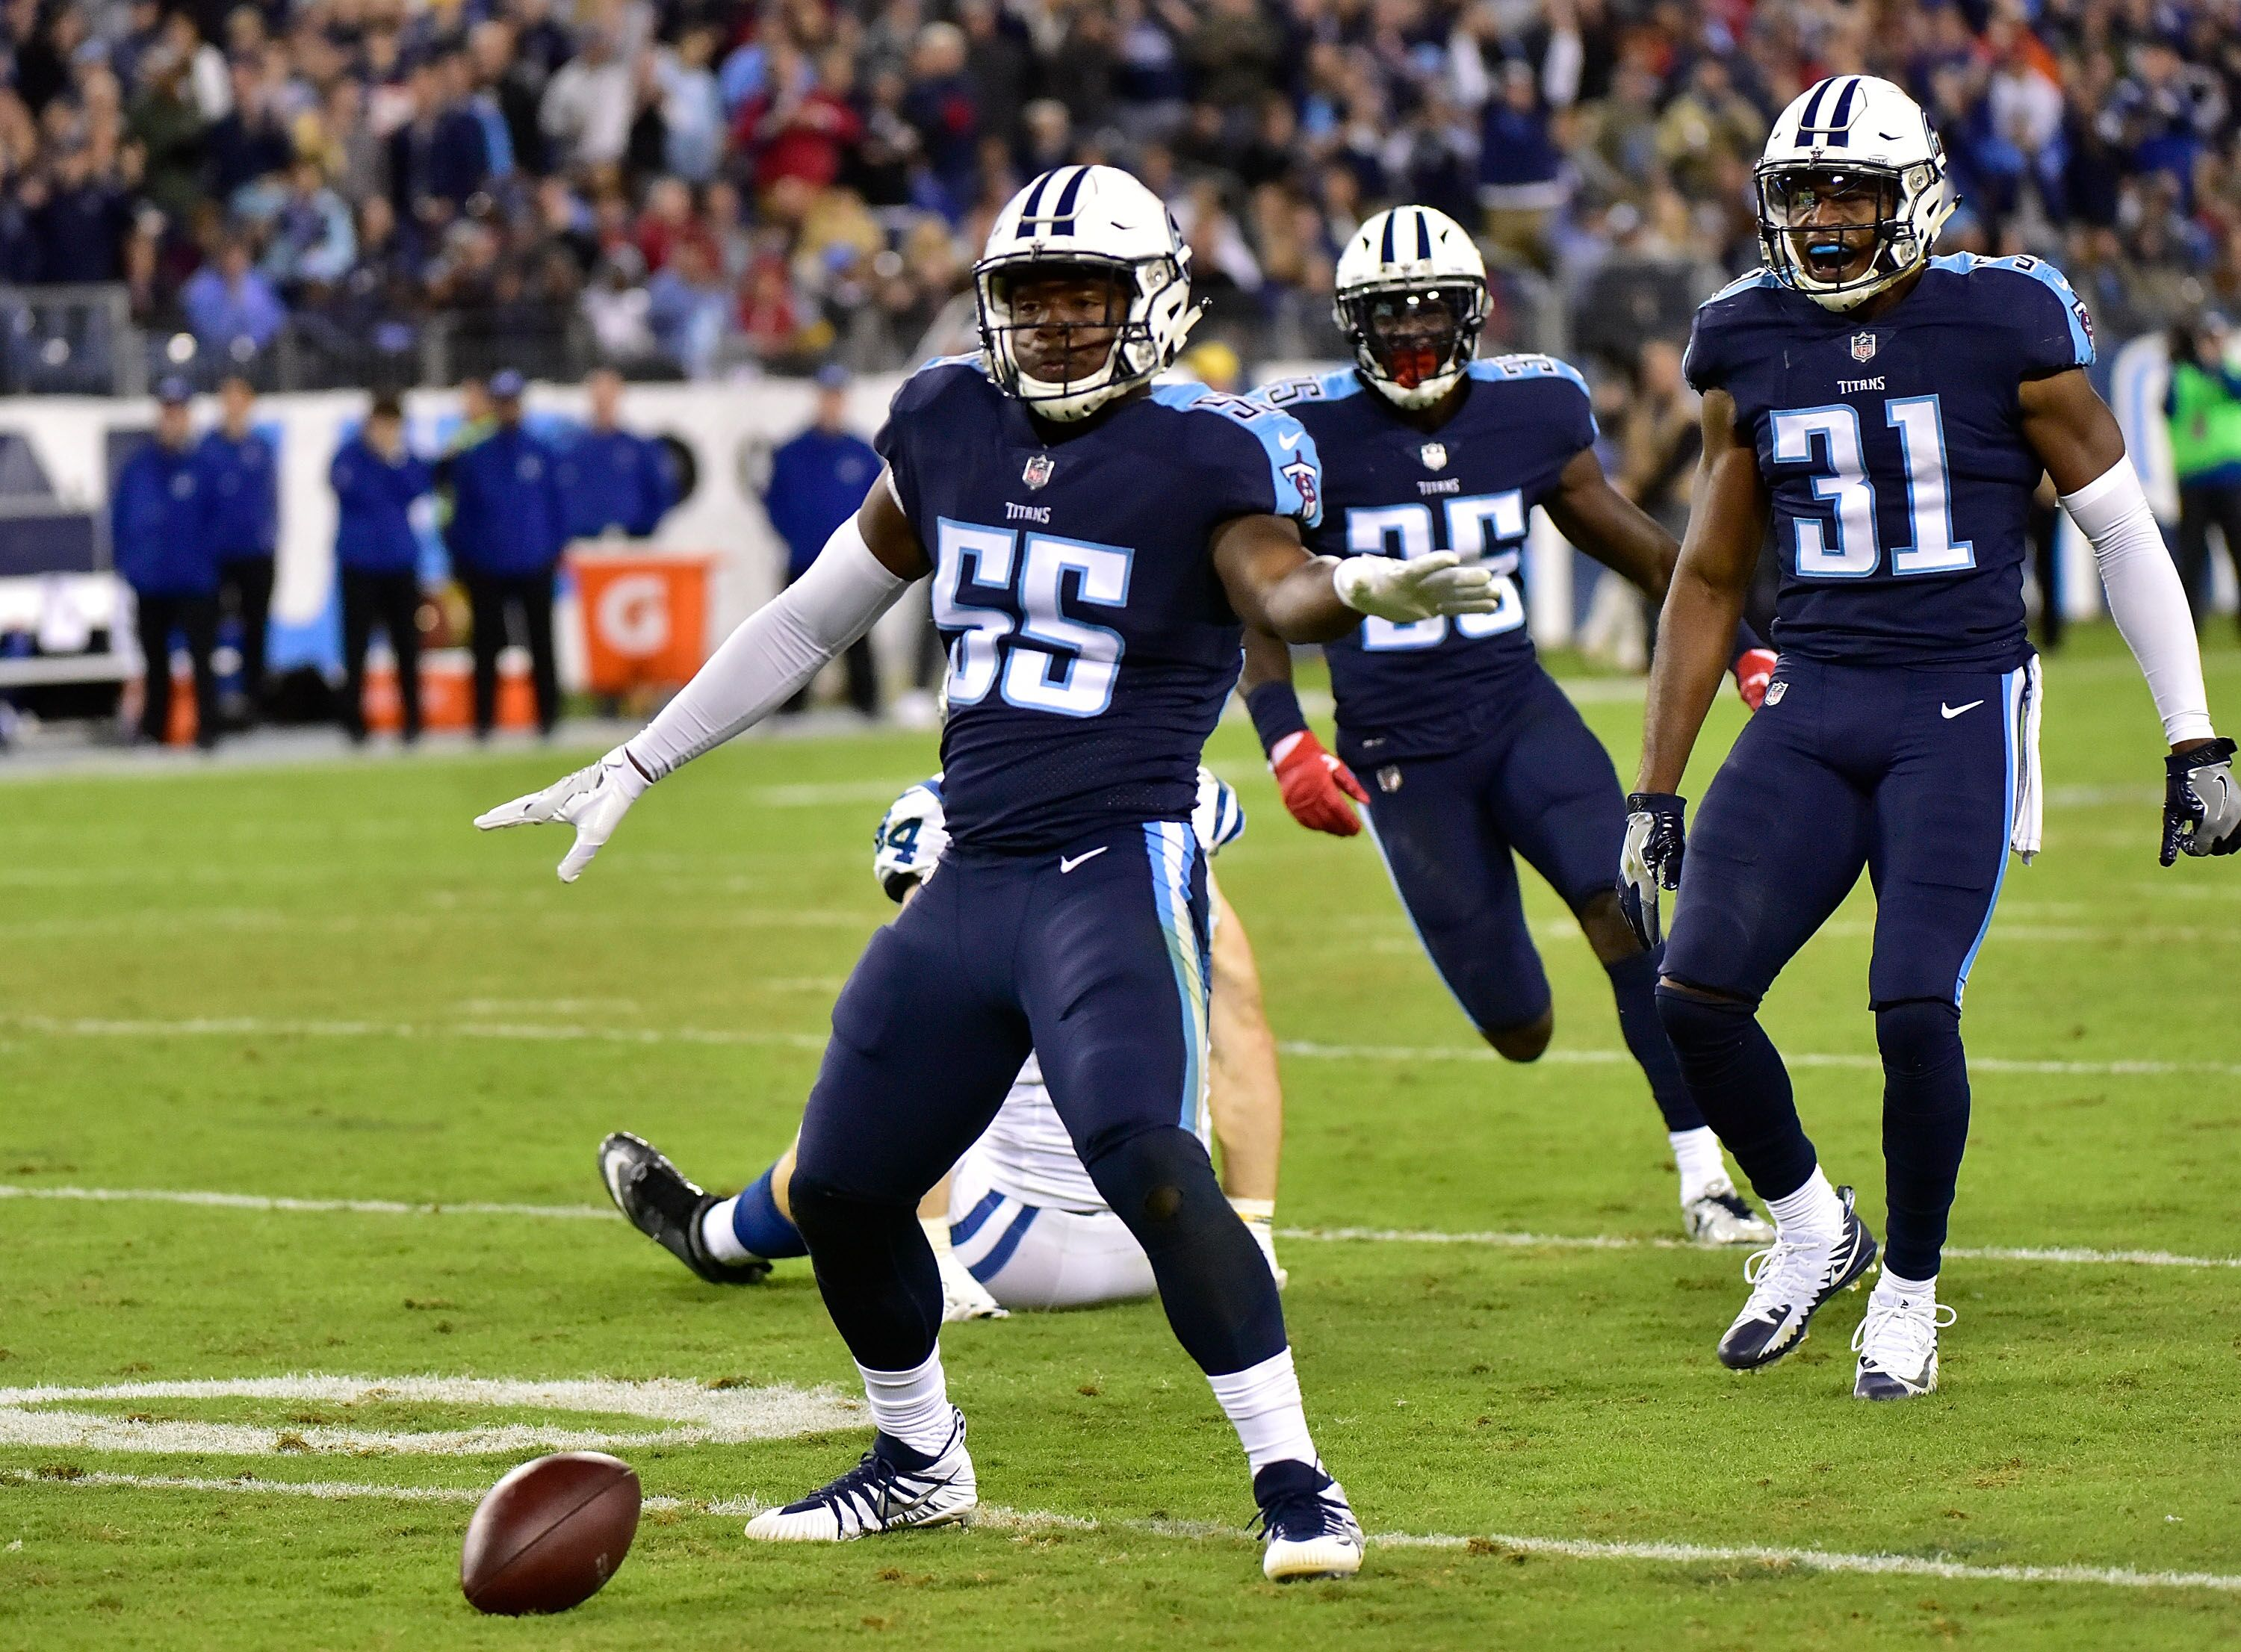 773cf68d Tennessee Titans: Notable Week 17 Pro Football Focus Grades